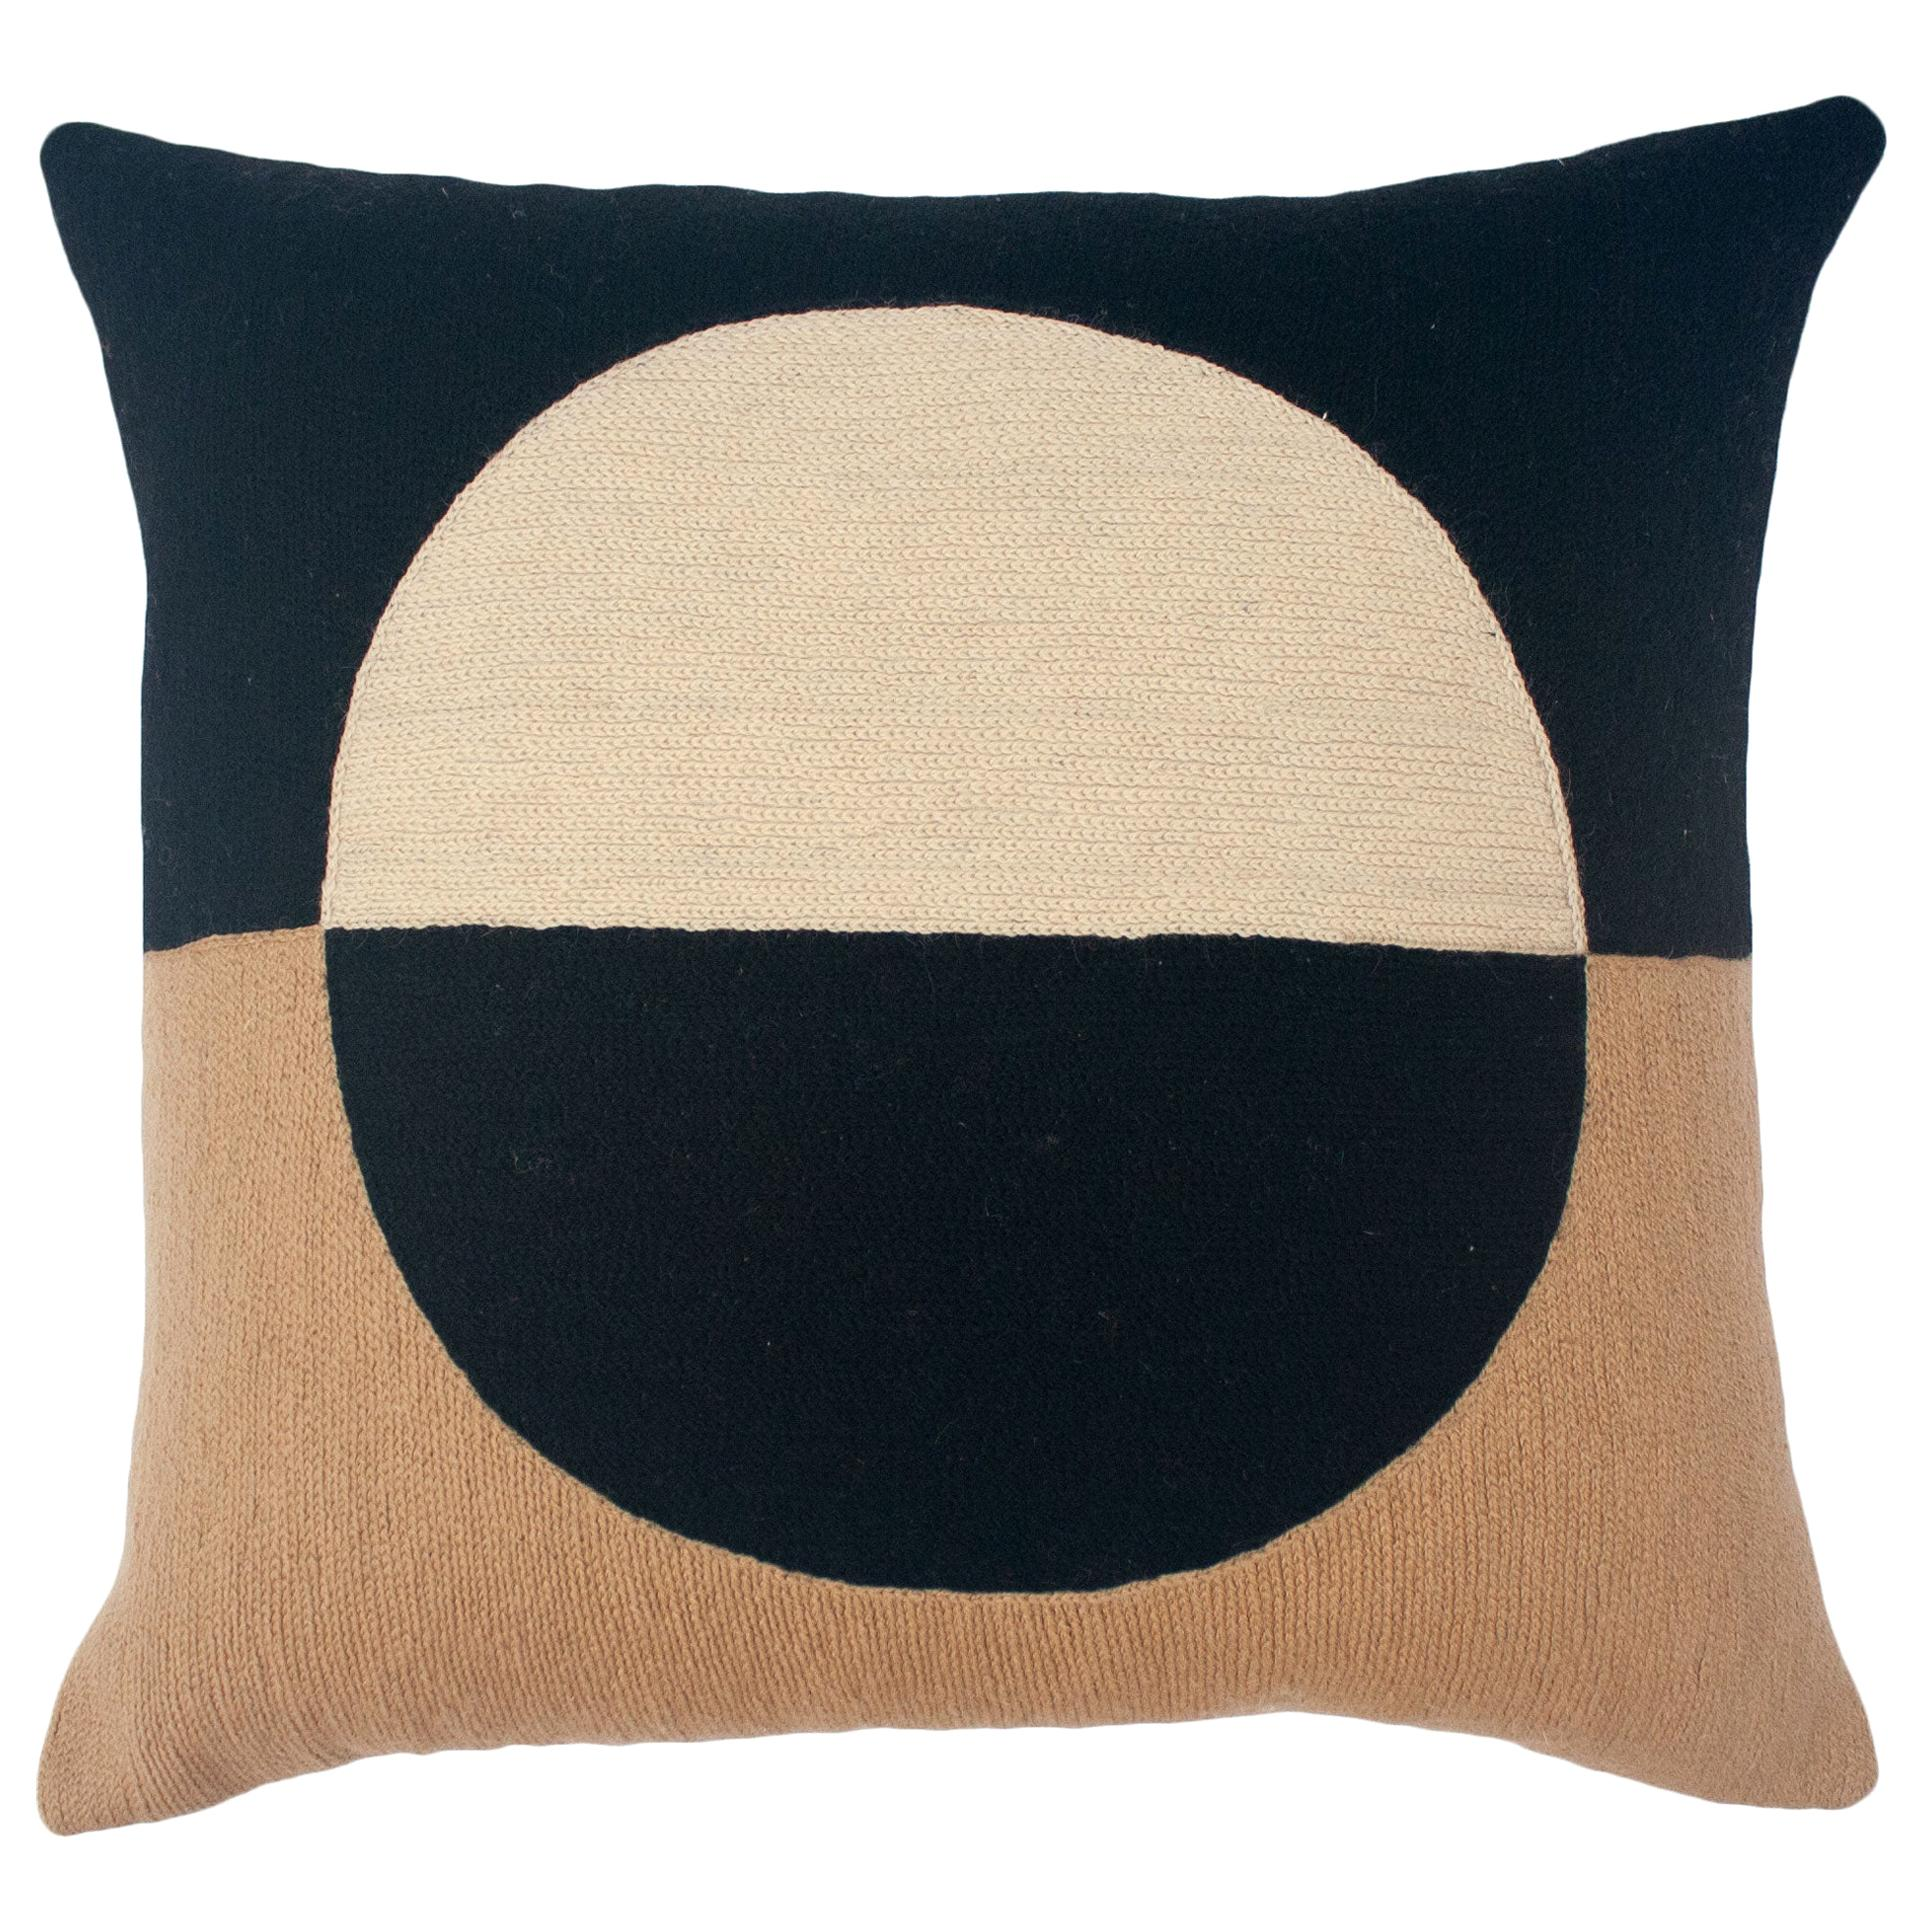 Marianne Circle Black Hand Embroidered Modern Geometric Throw Pillow Cover